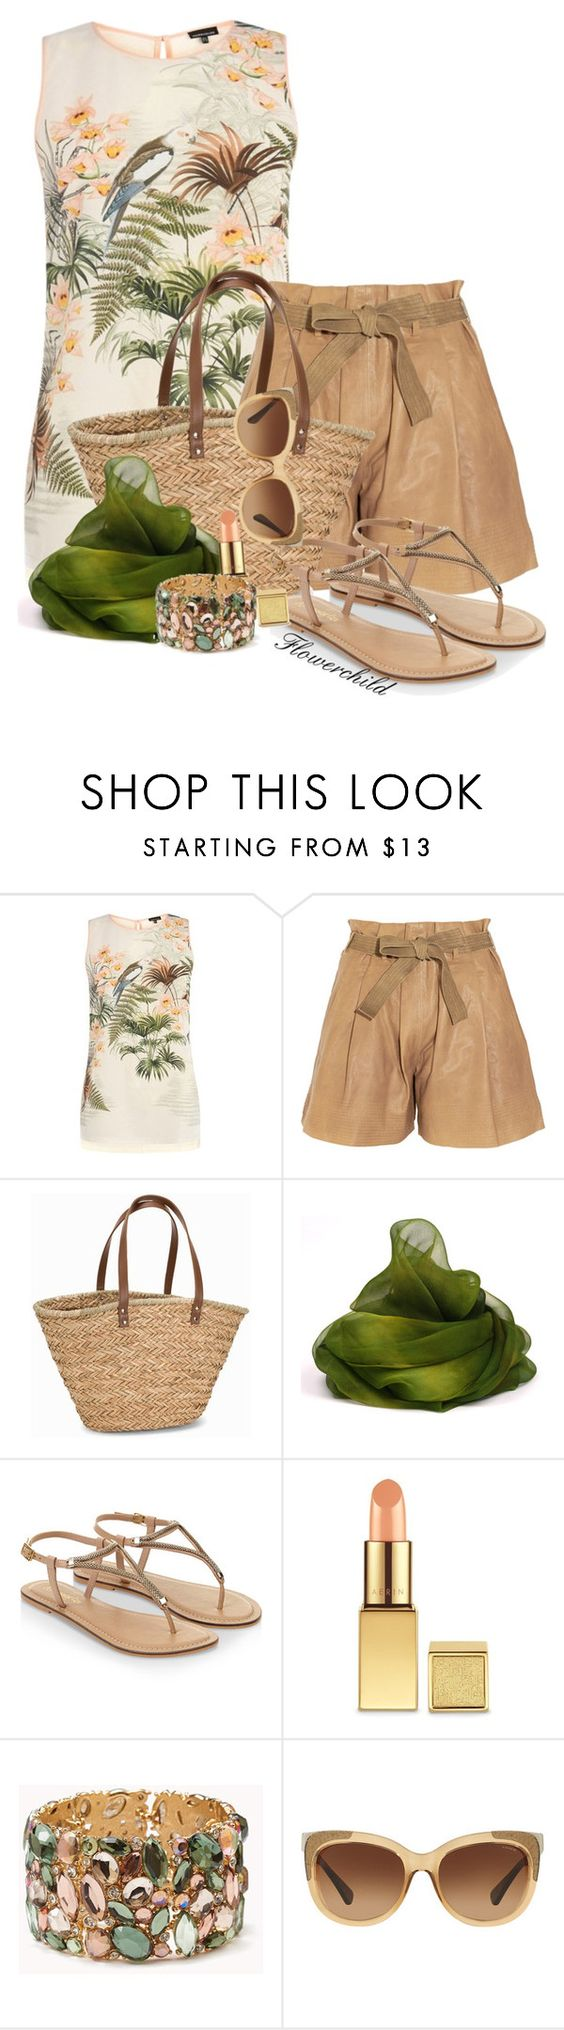 """""""Tropical Chic"""" by flowerchild805 on Polyvore featuring Warehouse, See by Chloé, NLY Accessories, Monsoon, Forever 21 and Coach"""